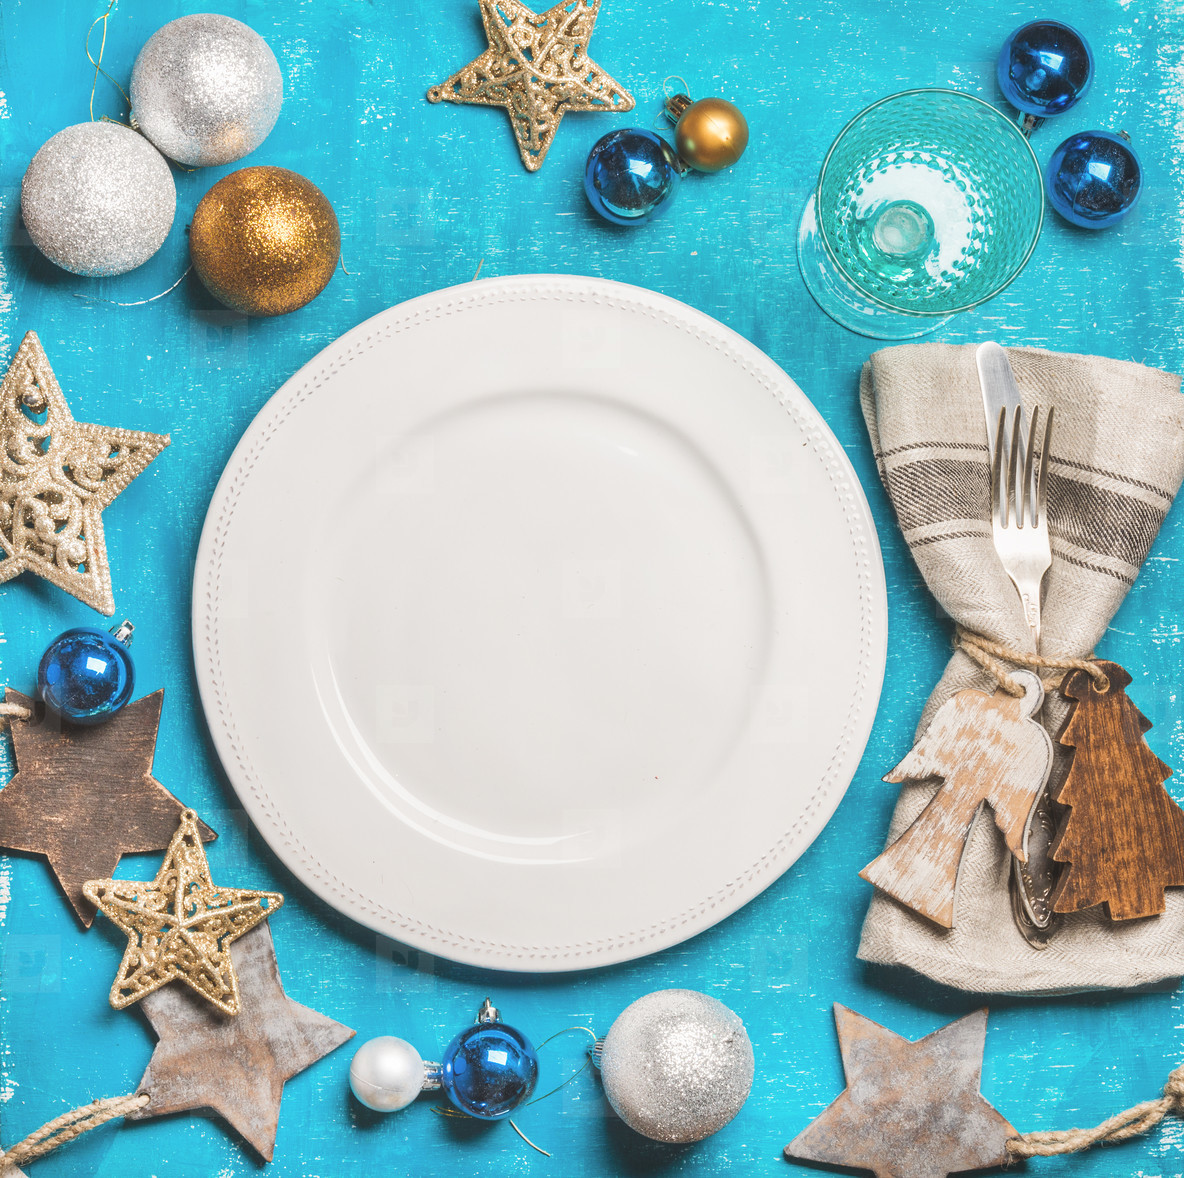 Christmas  New Year holiday background with white plate in center